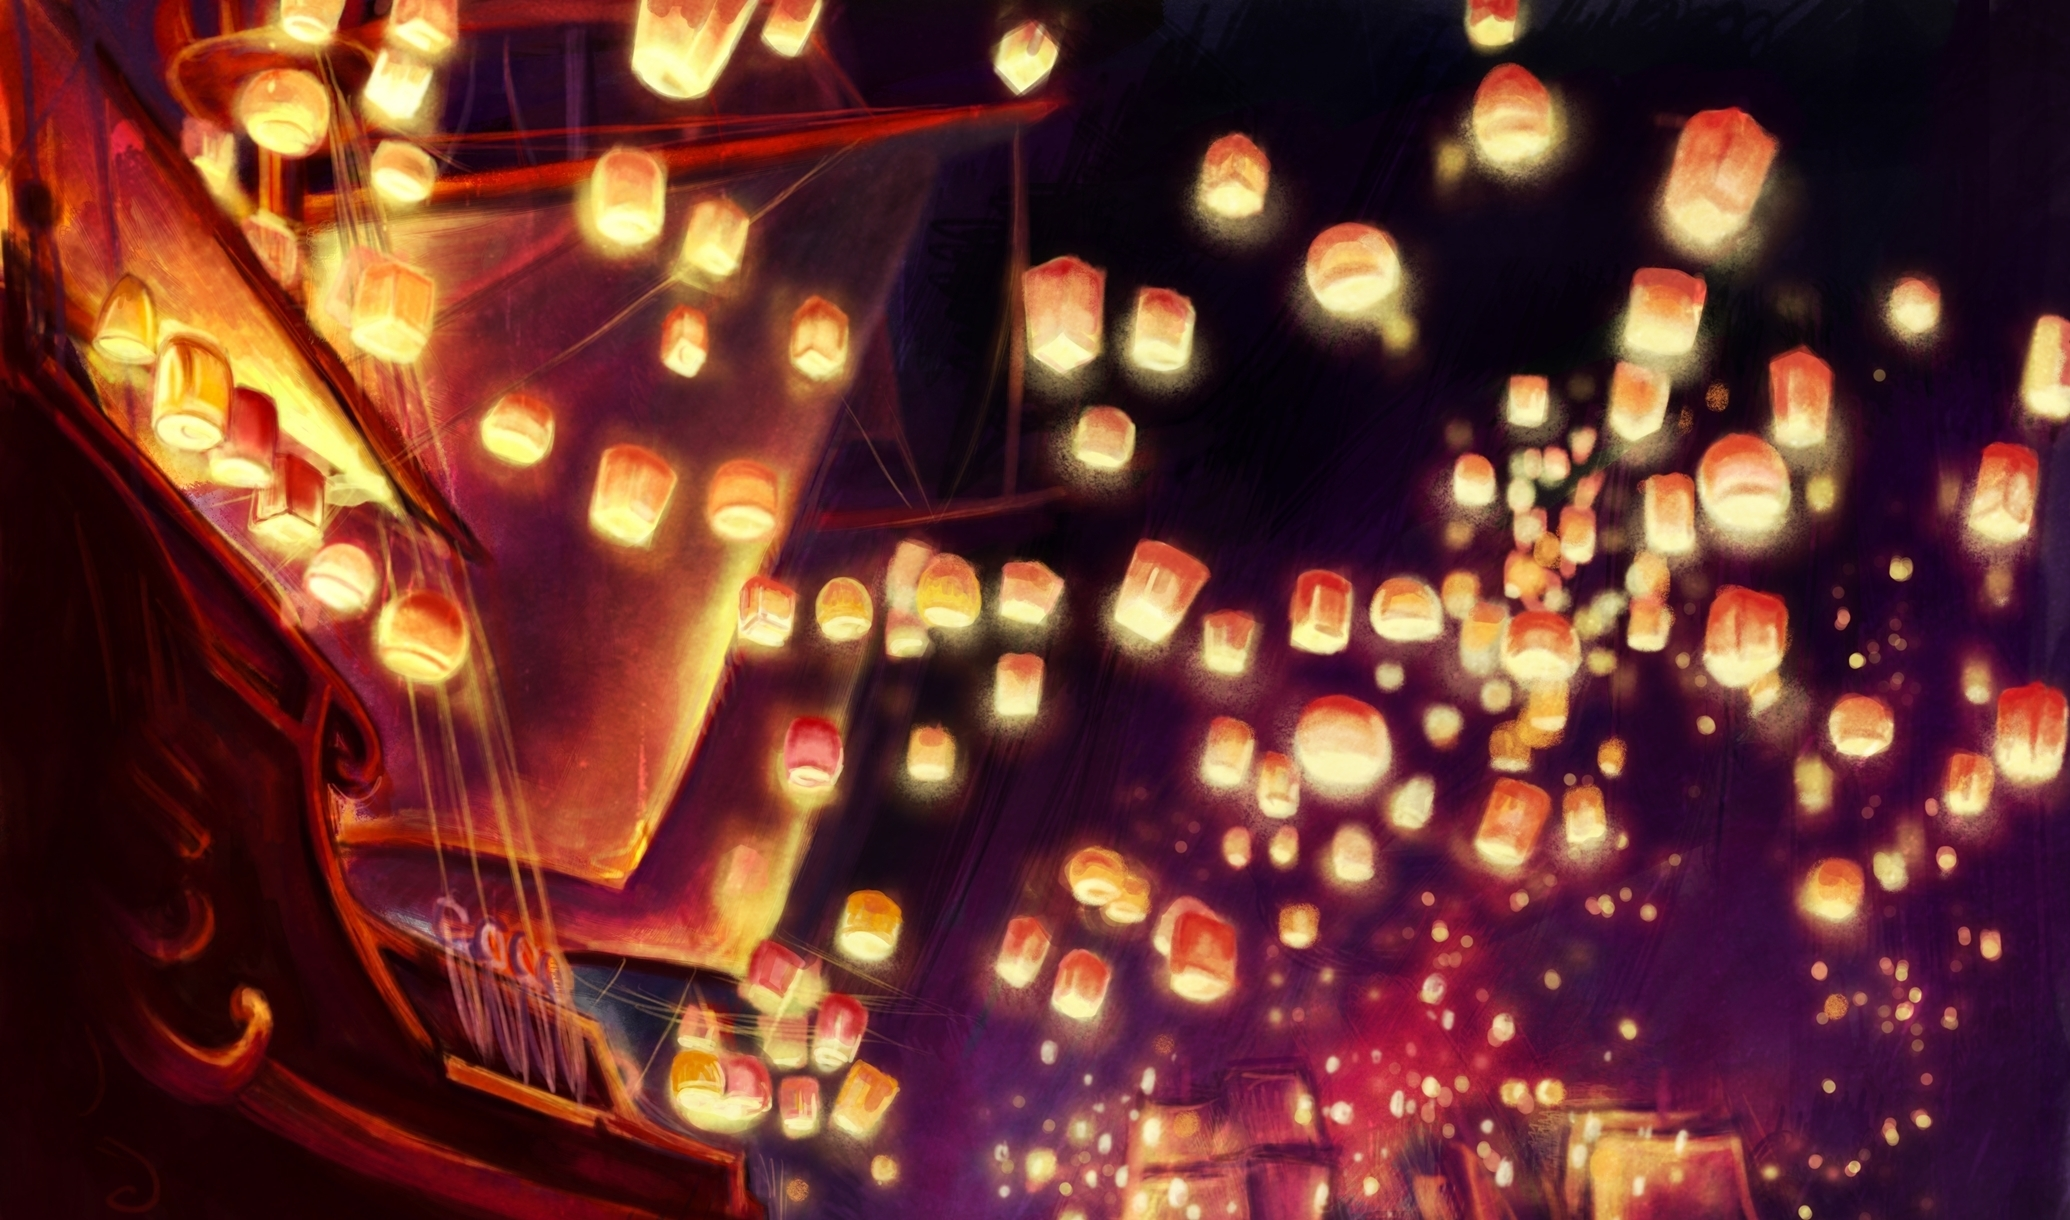 Tangled Full HD Wallpaper and Background Image | 2070x1220 | ID:432330 for Tangled Lanterns Iphone Wallpaper  303mzq